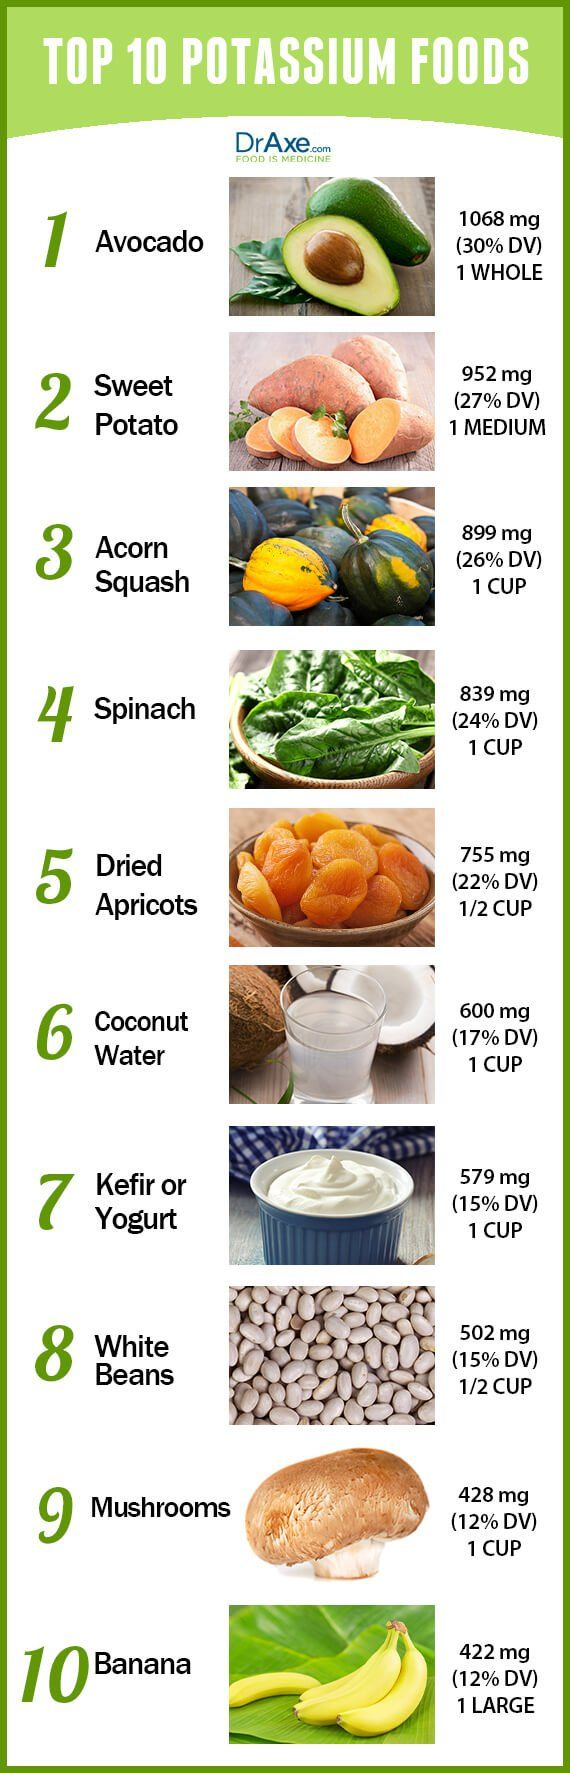 Potassium Foods List.  Sodium brings in fluid and nutrients, while potassium flushes toxins.